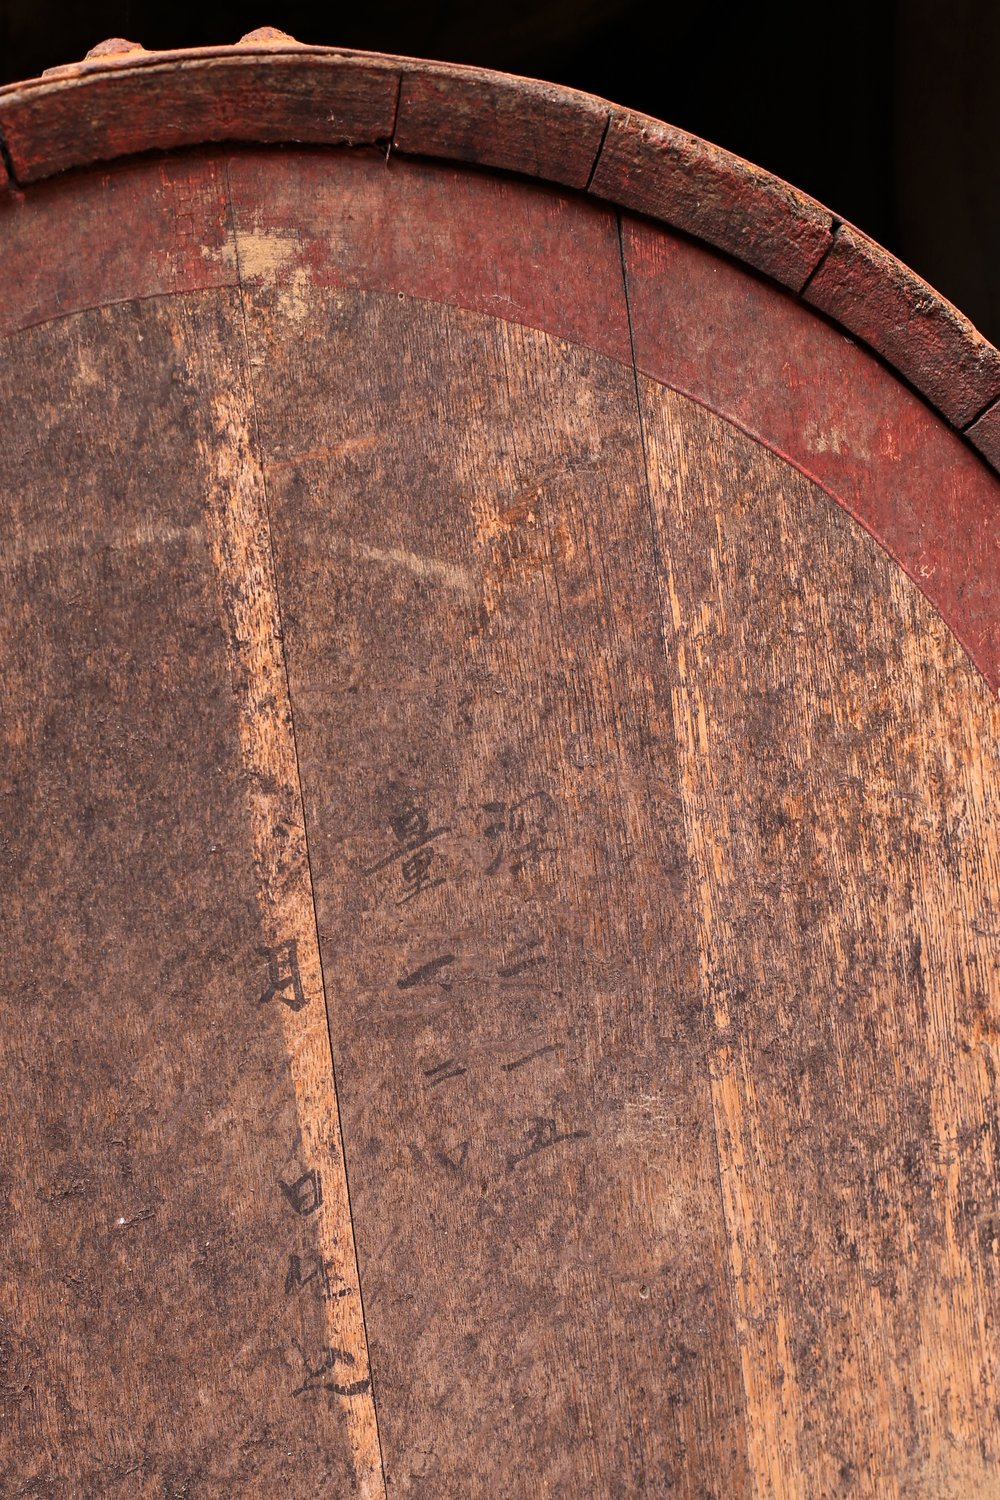 Koshu Valley_Japanese Wine Region_Barrel.JPG